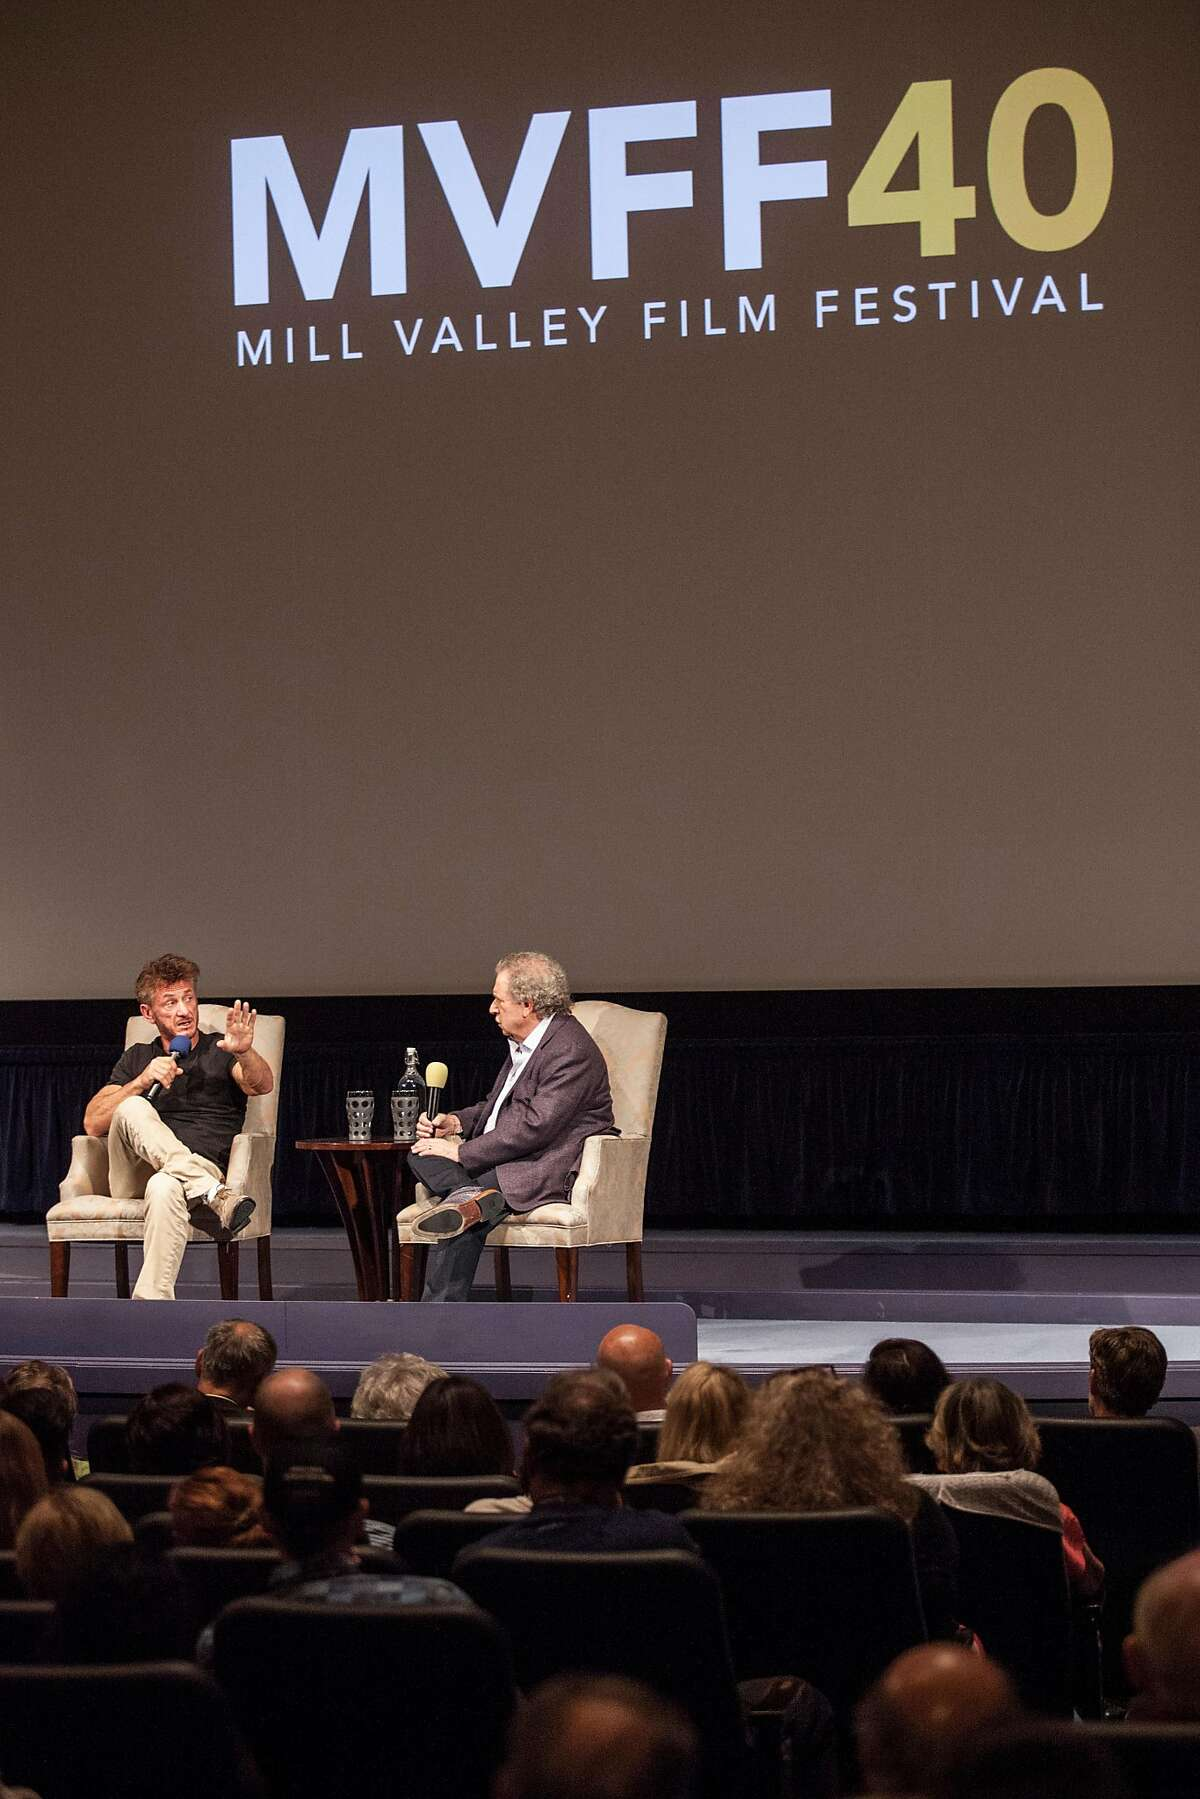 Sean Penn speaks with Mill Valley Film Festival executive director Mark Fishkin at the Smith Rafael Film Center during Mill Valley Film Festival's 40th Anniversary Tribute Program to Mr. Penn in San Rafael.